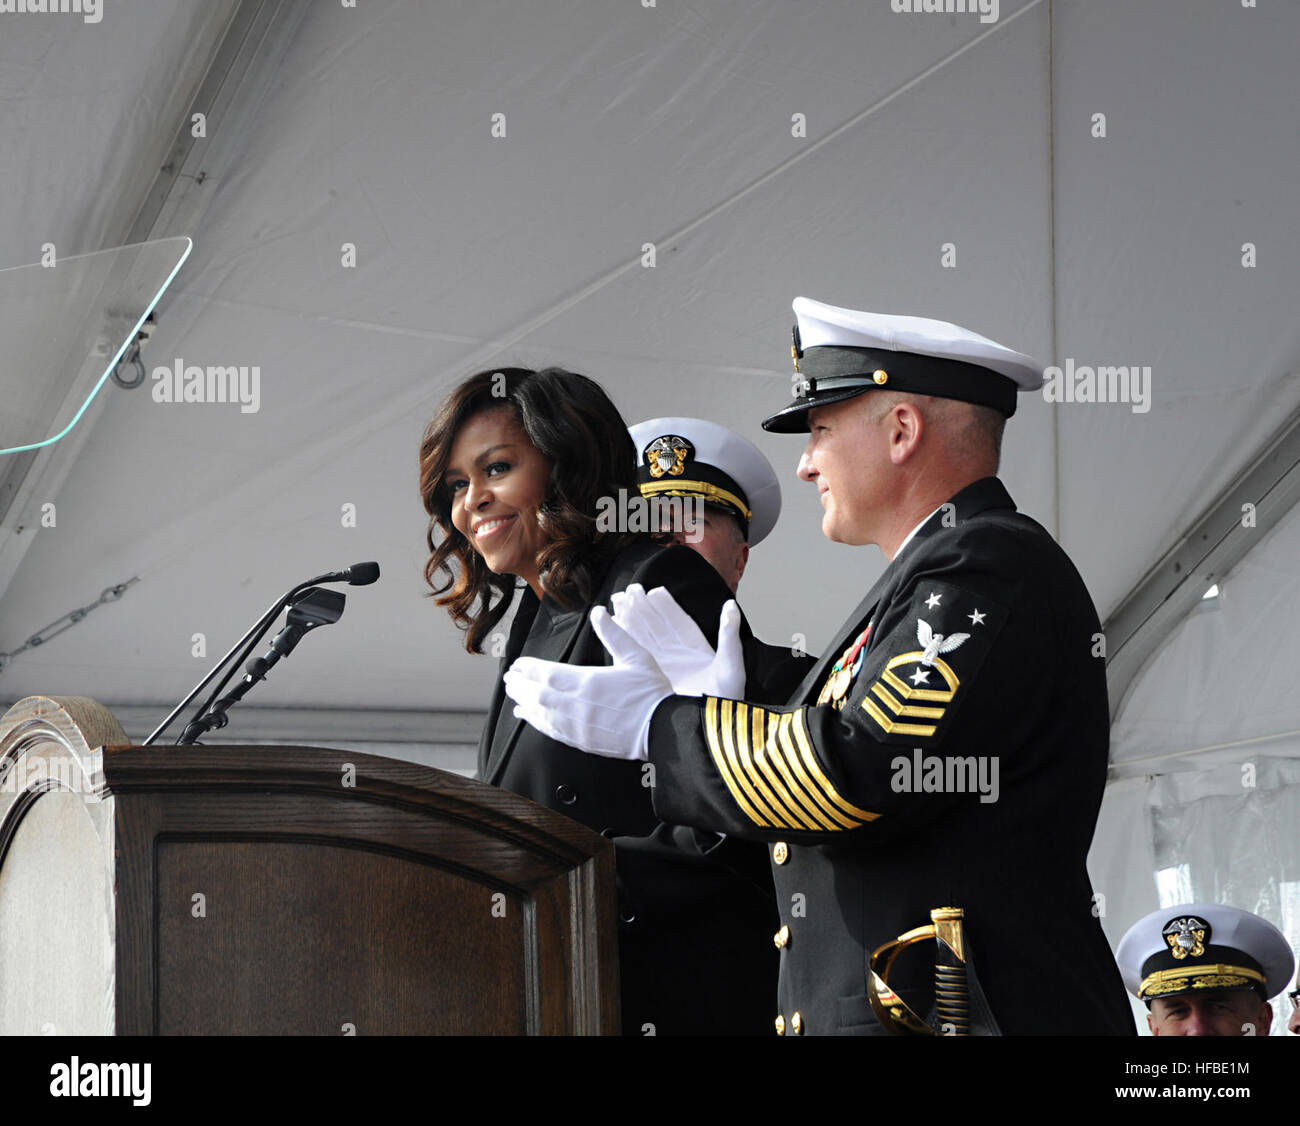 161029-N-HI707-293  GROTON, Conn. (Oct. 29, 2016) First Lady Michelle Obama announces 'Bring the Ship to Life' - Stock Image